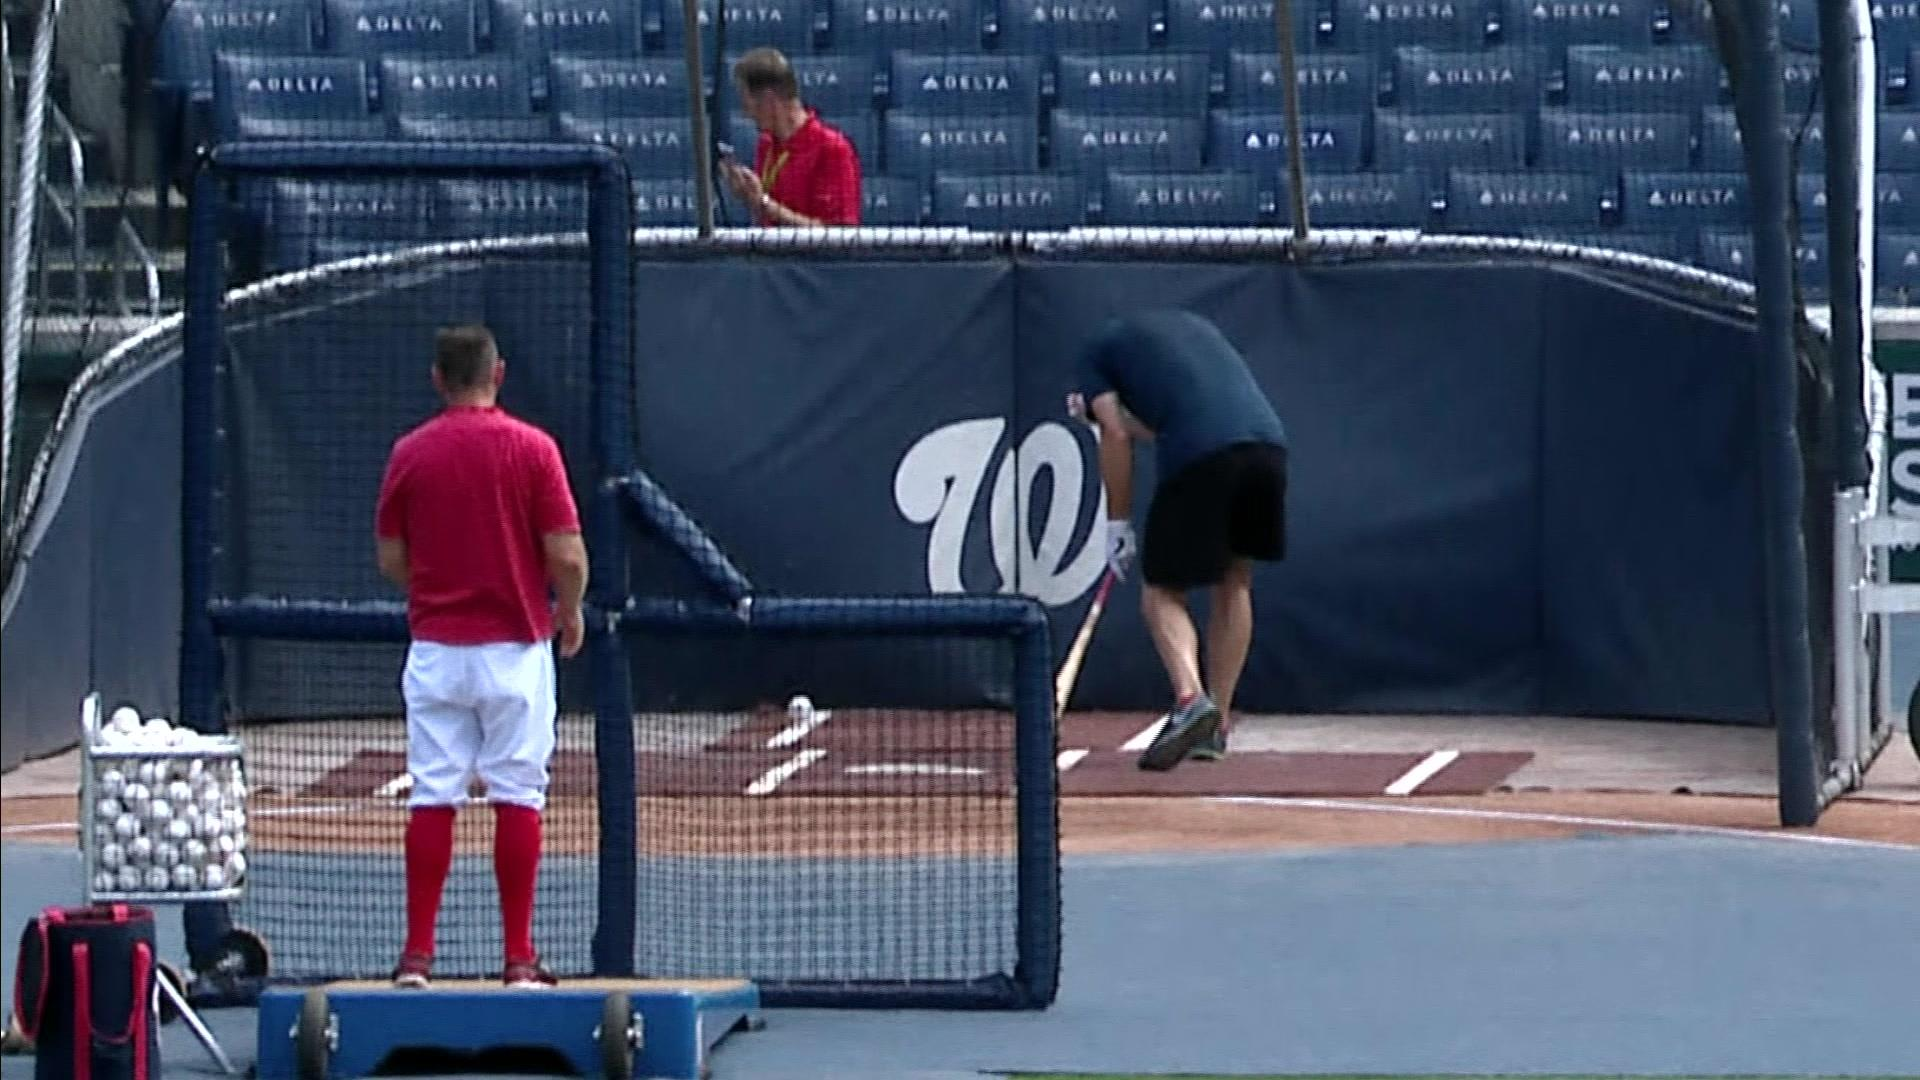 Nationals pitcher Max Scherzer leaves BP after fouling ball off his